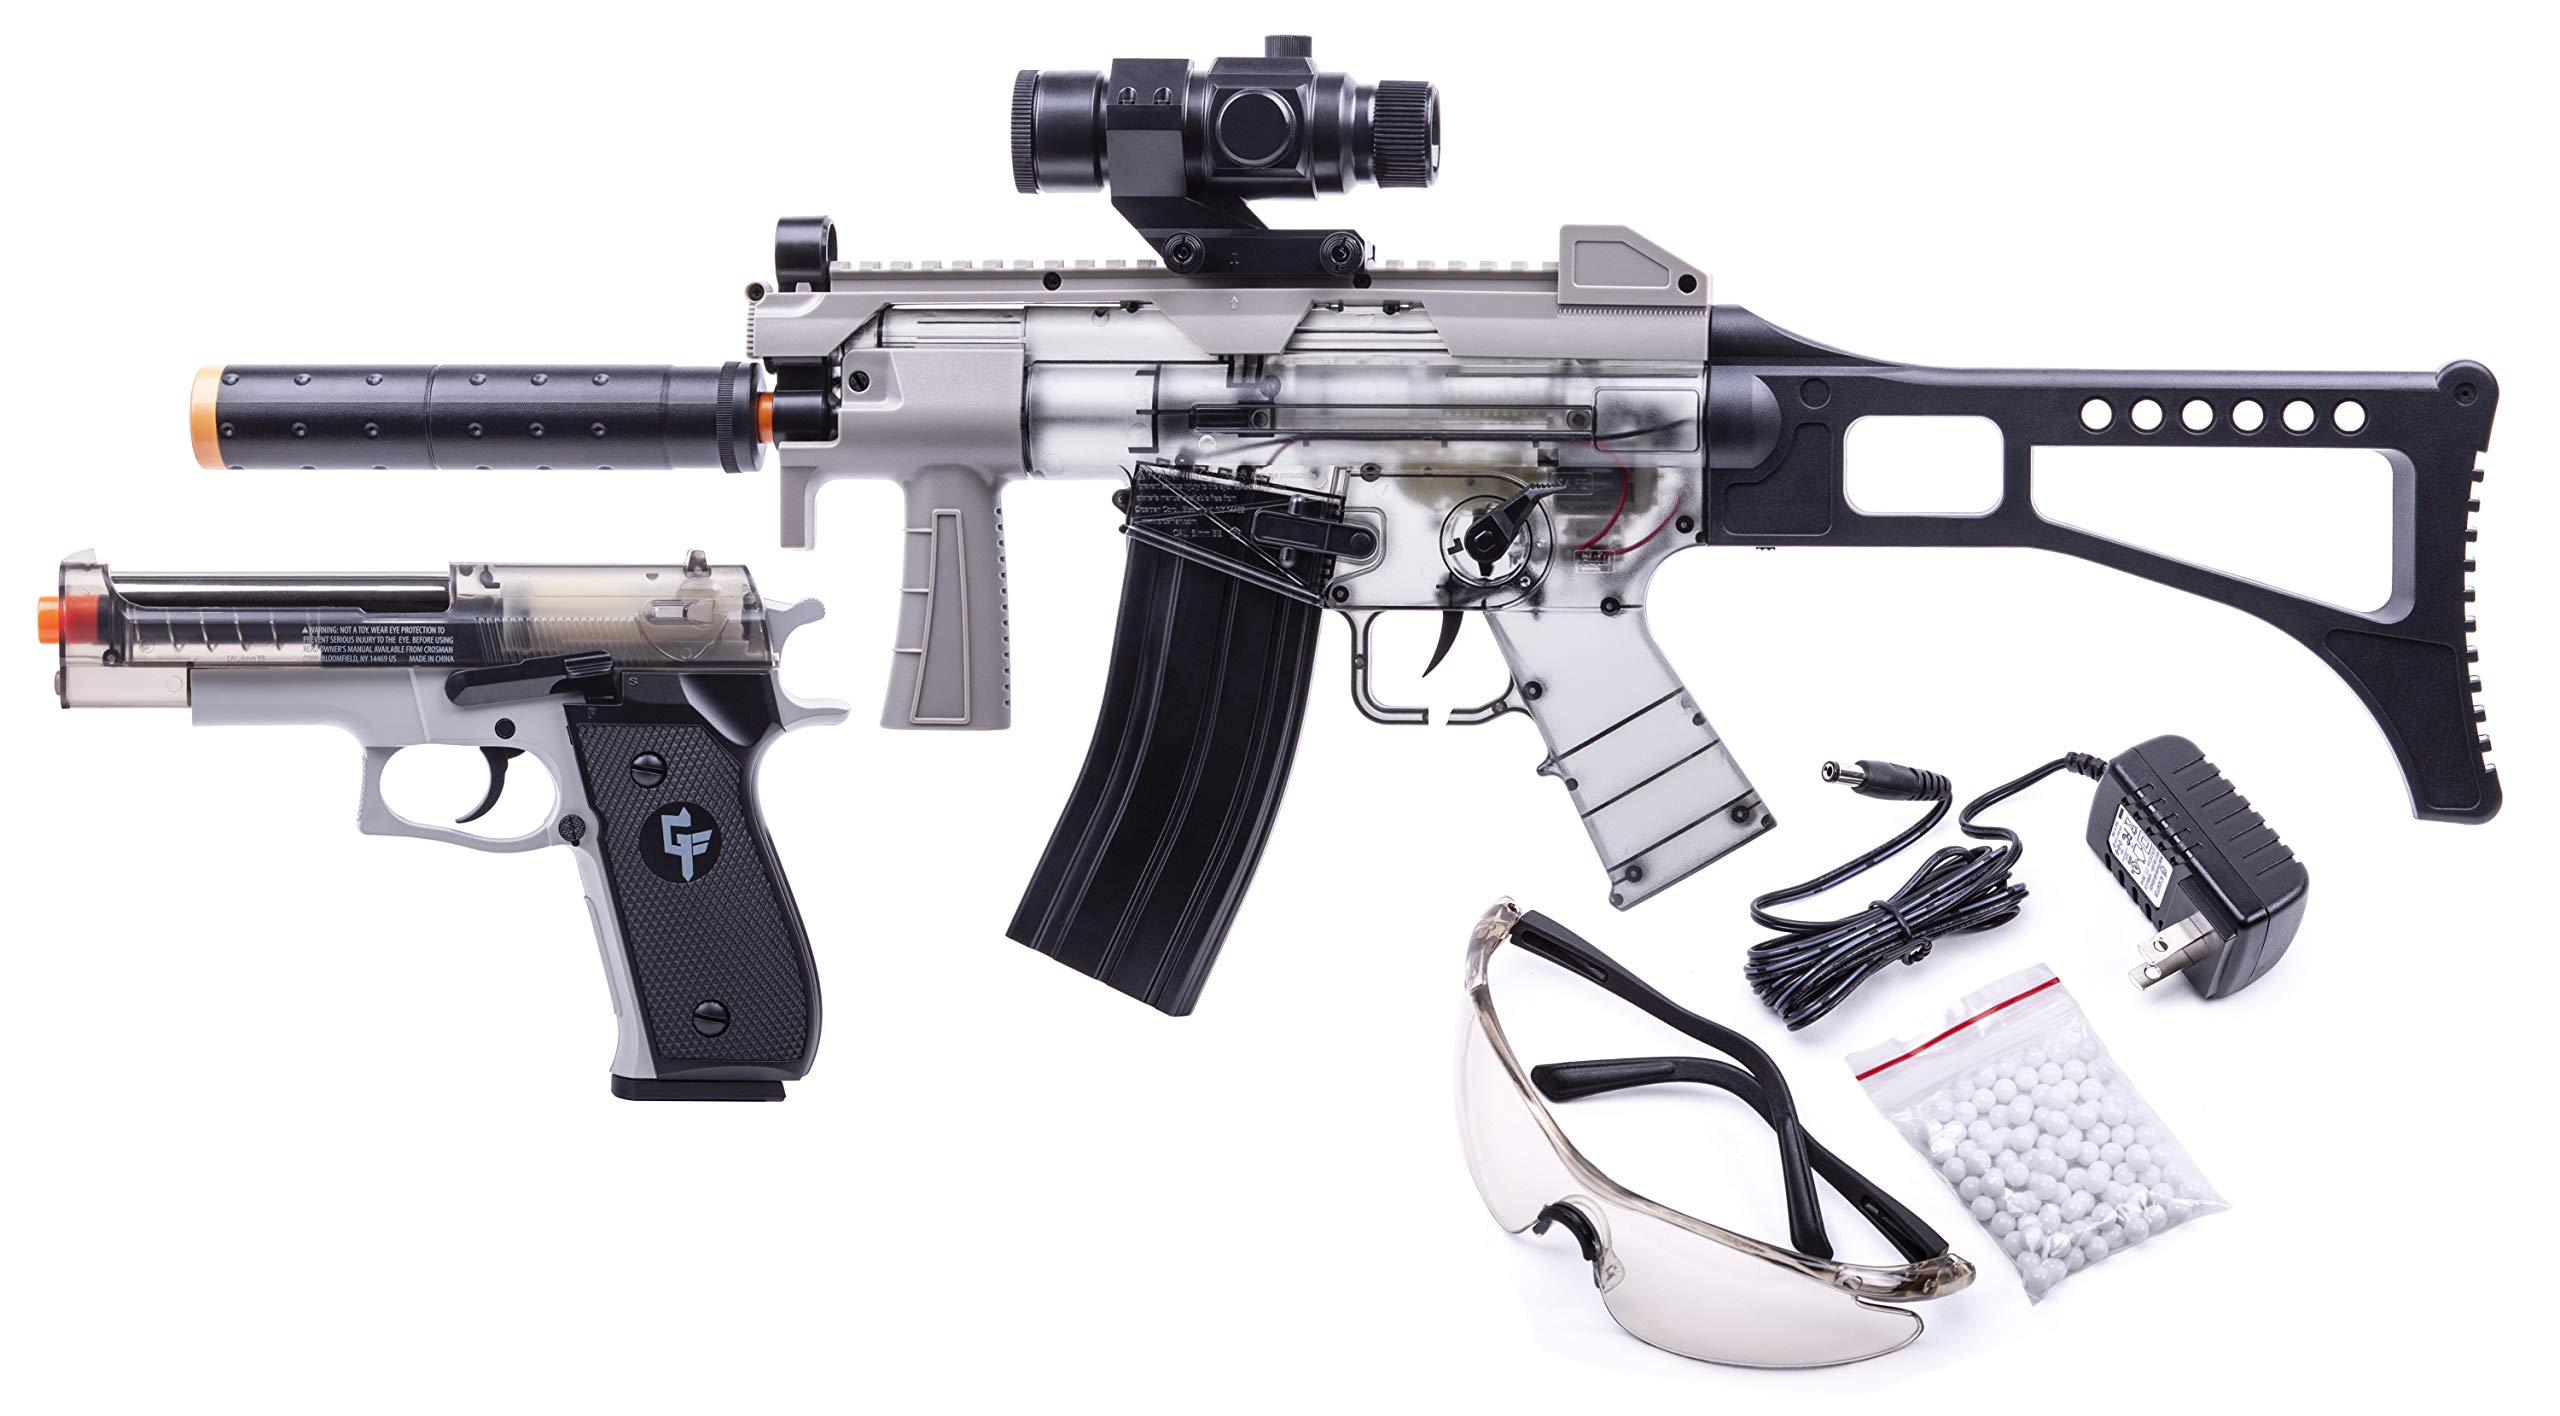 GAME FACE GFRPKTGS Ghost Affliction Full-Auto Airsoft BB Rifle And Spring-Powered Pistol Kit With Safety Glasses And BB's, (Grey/Smoke)